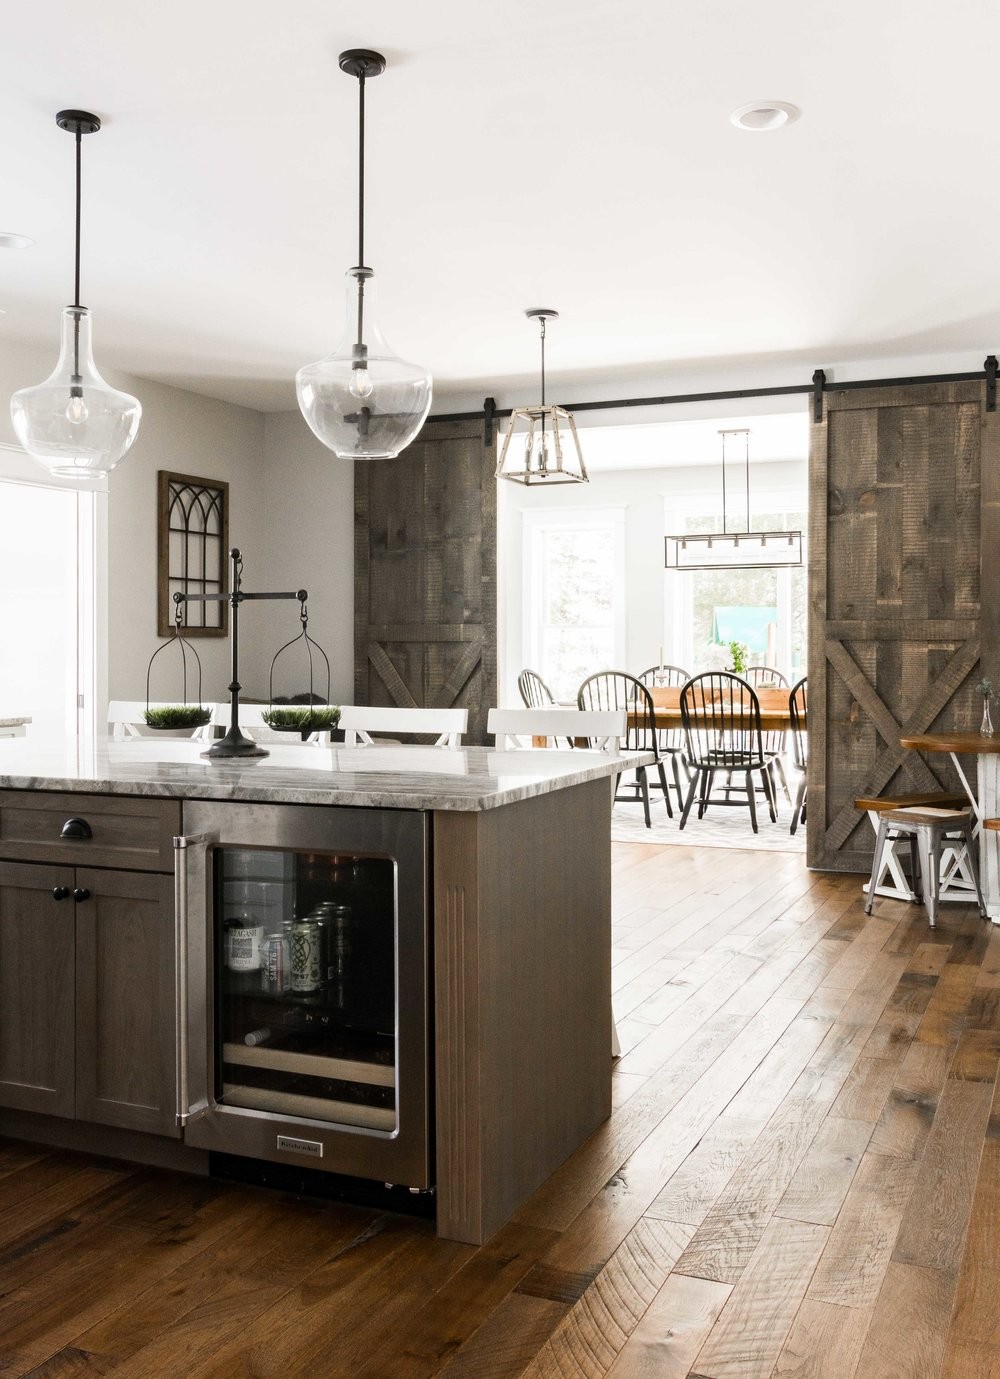 Birchwood Farmhouse, Gorham, Maine, Kitchen Eating Areas